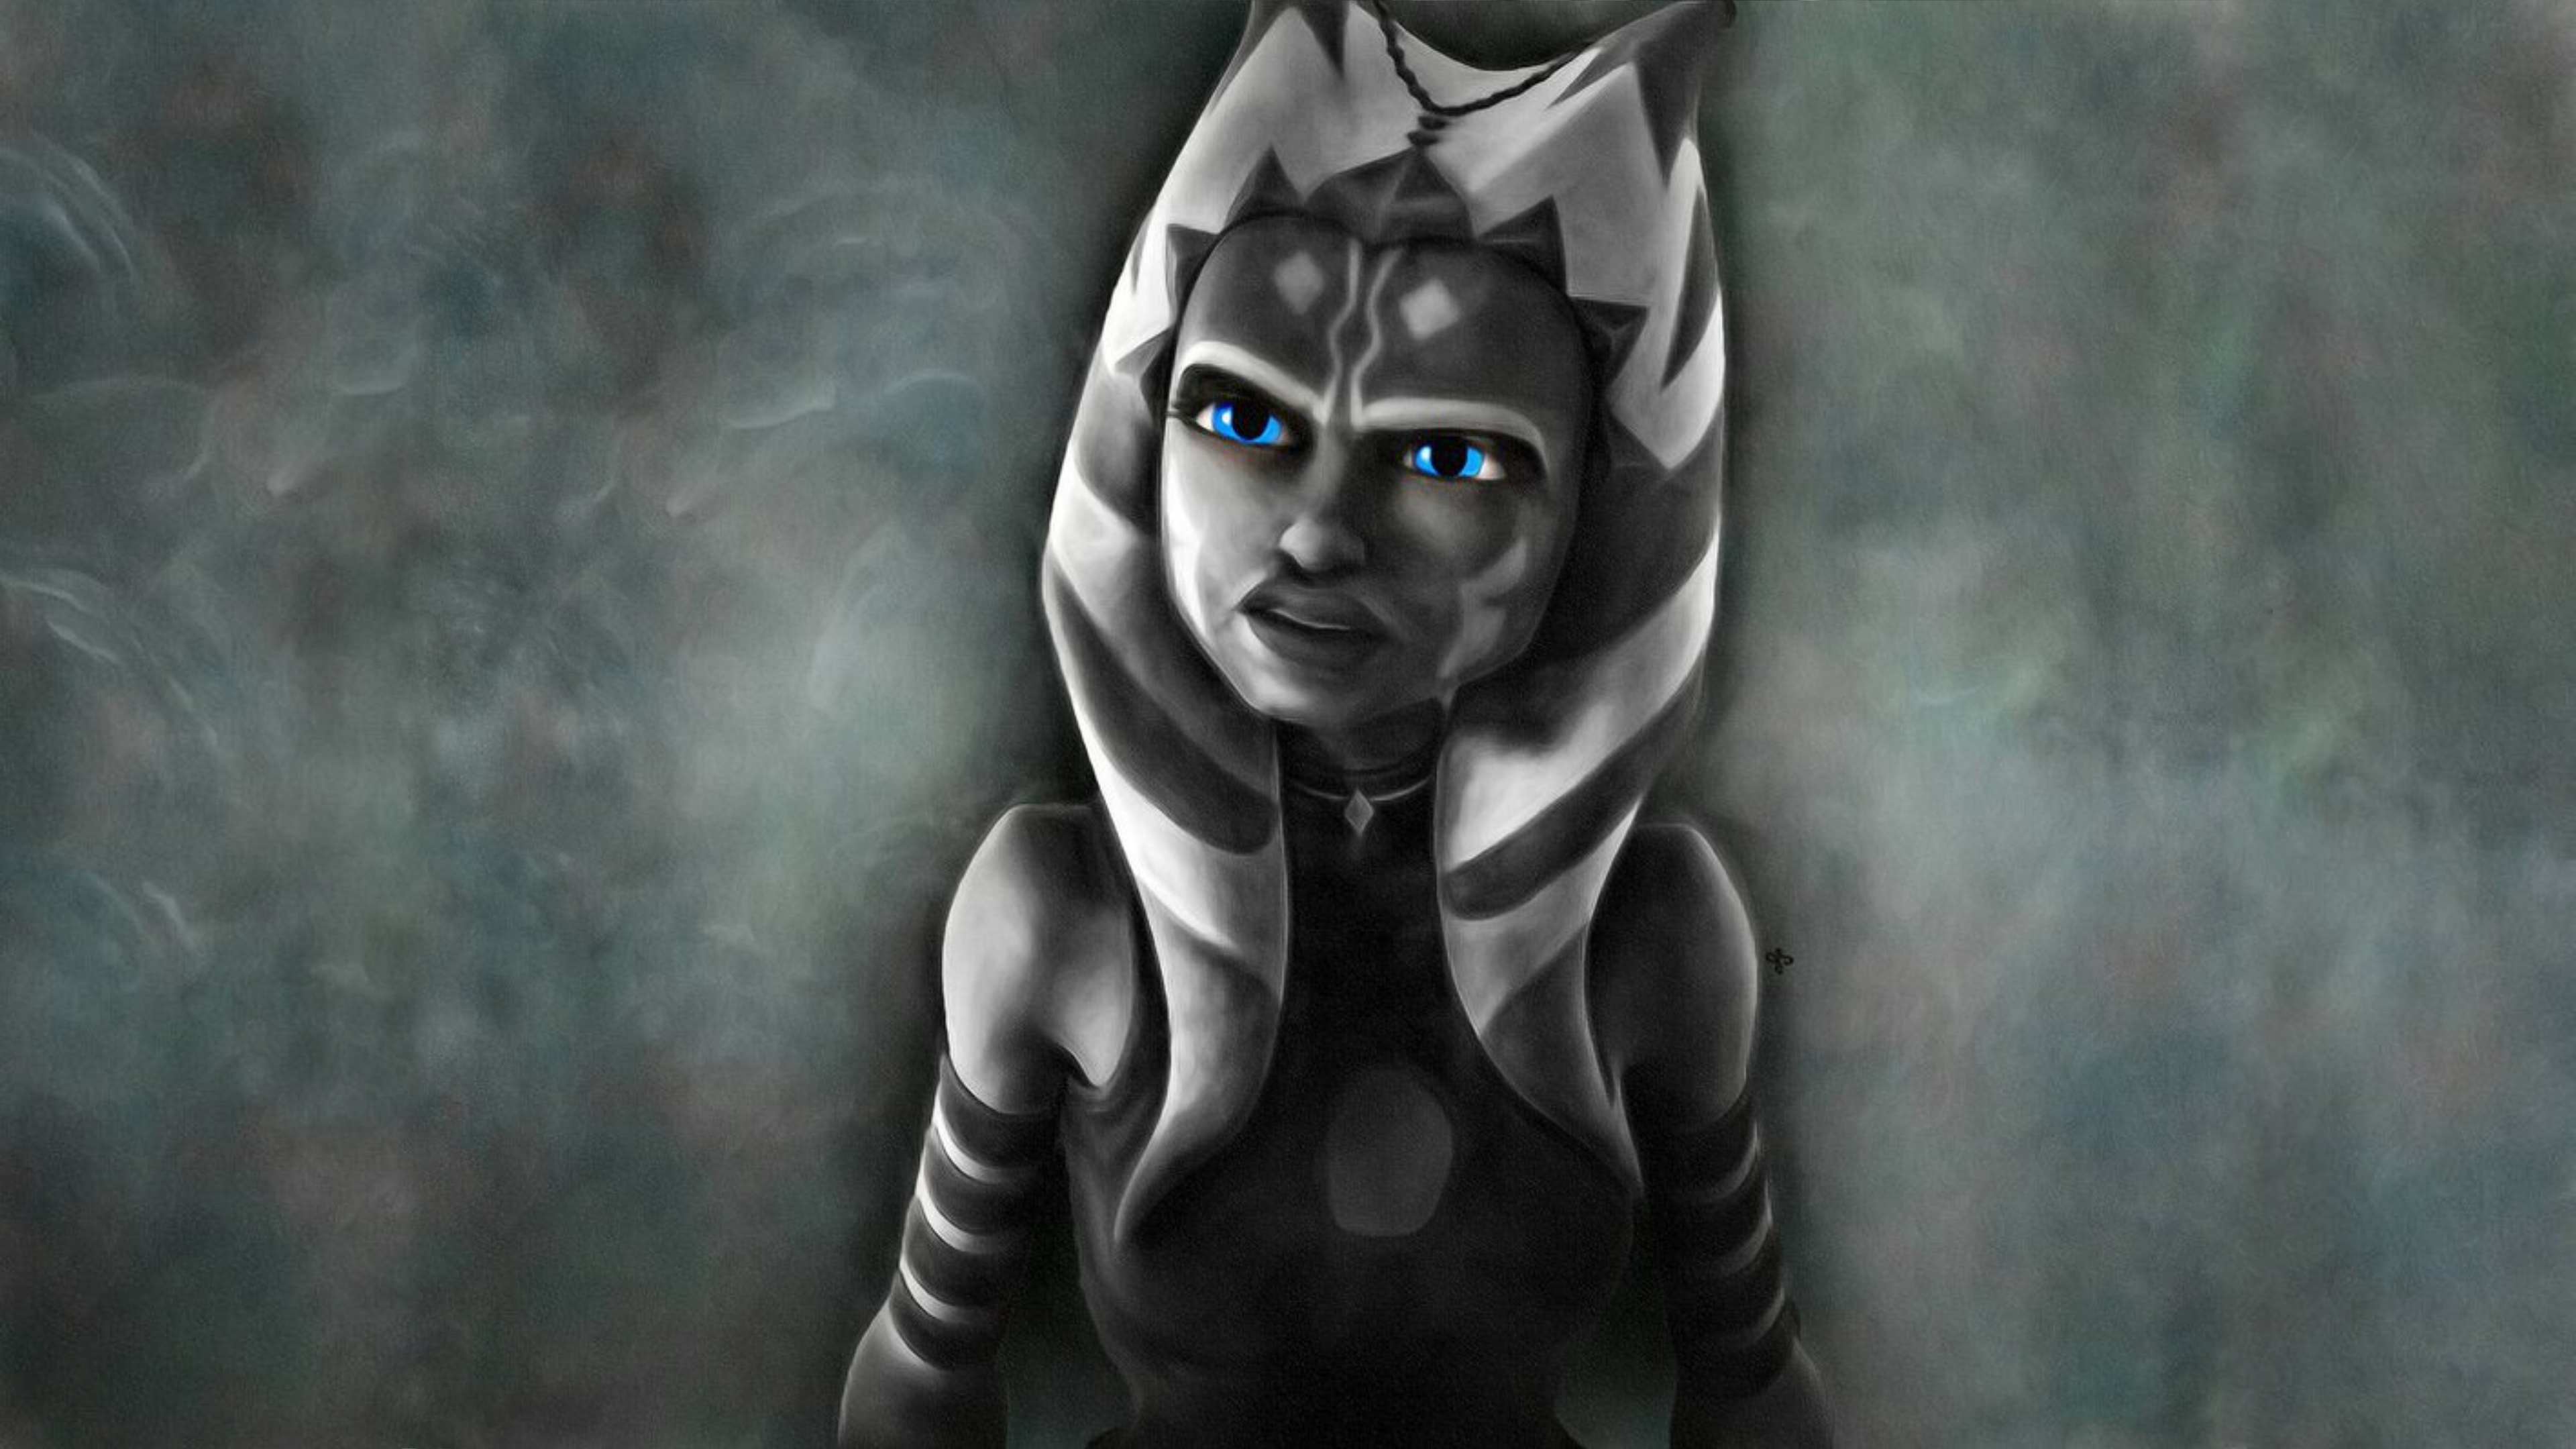 Ahsoka Tano Wallpaper Batman 1573190 Hd Wallpaper Backgrounds Download